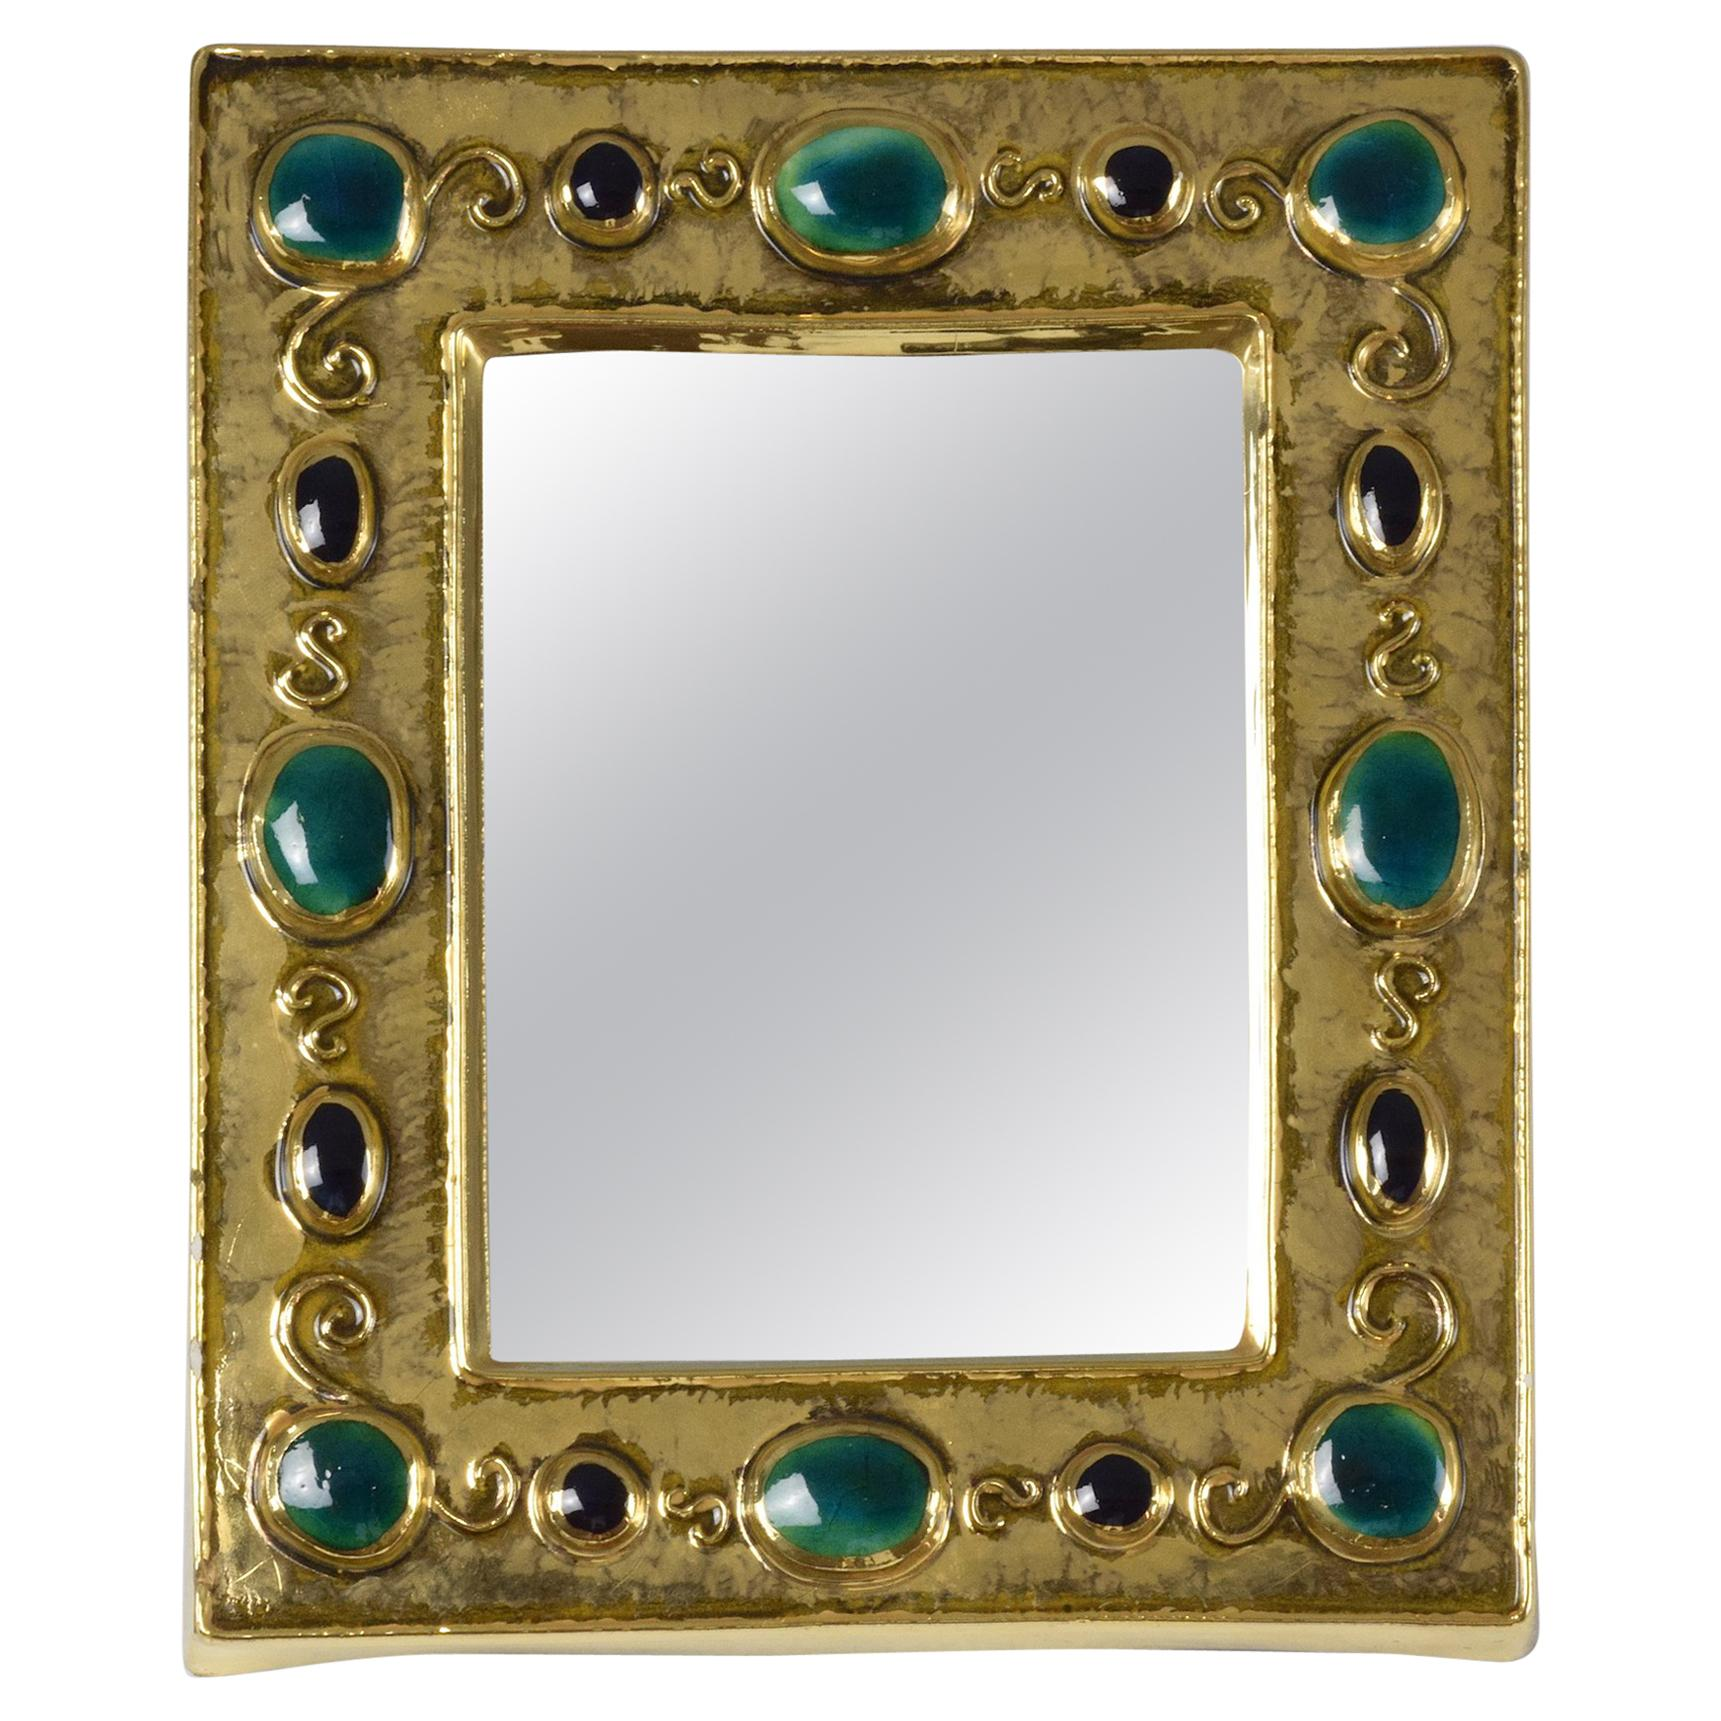 French Midcentury Ceramic Mirror Frame by François Lembo, 1960s